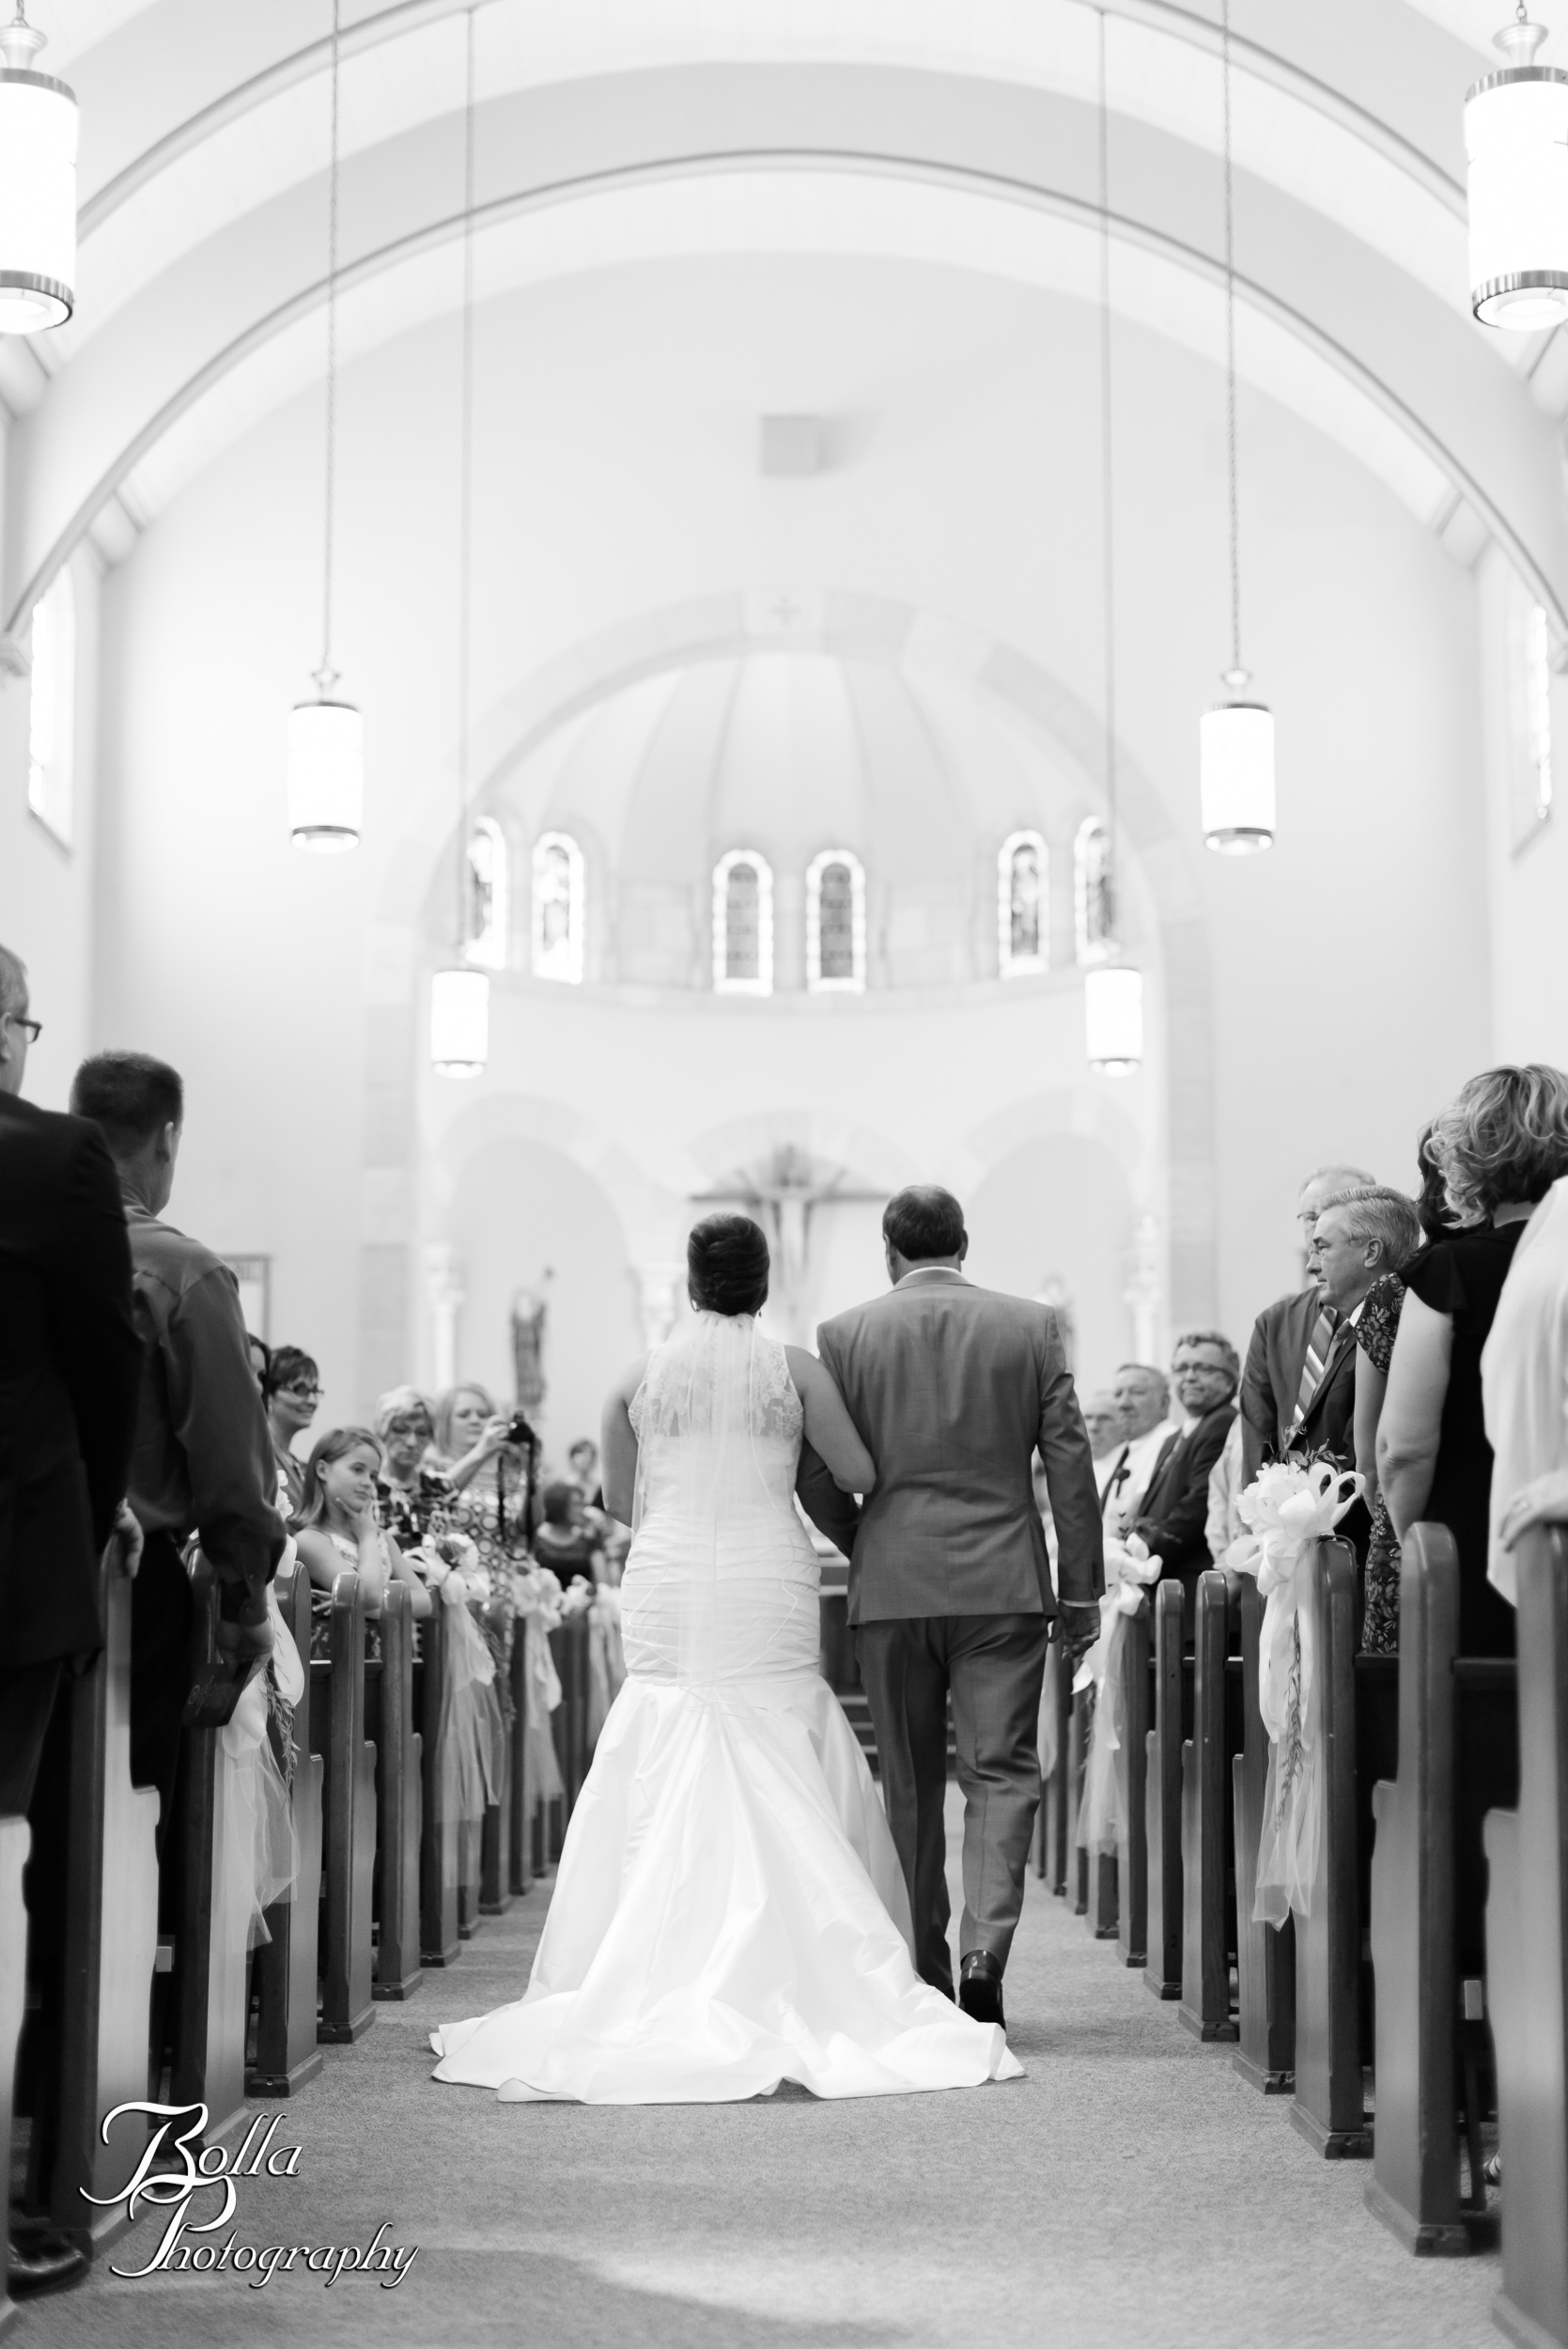 Bolla_photography_edwardsville_wedding_photographer_st_louis_weddings_Heinzmann-0189.jpg